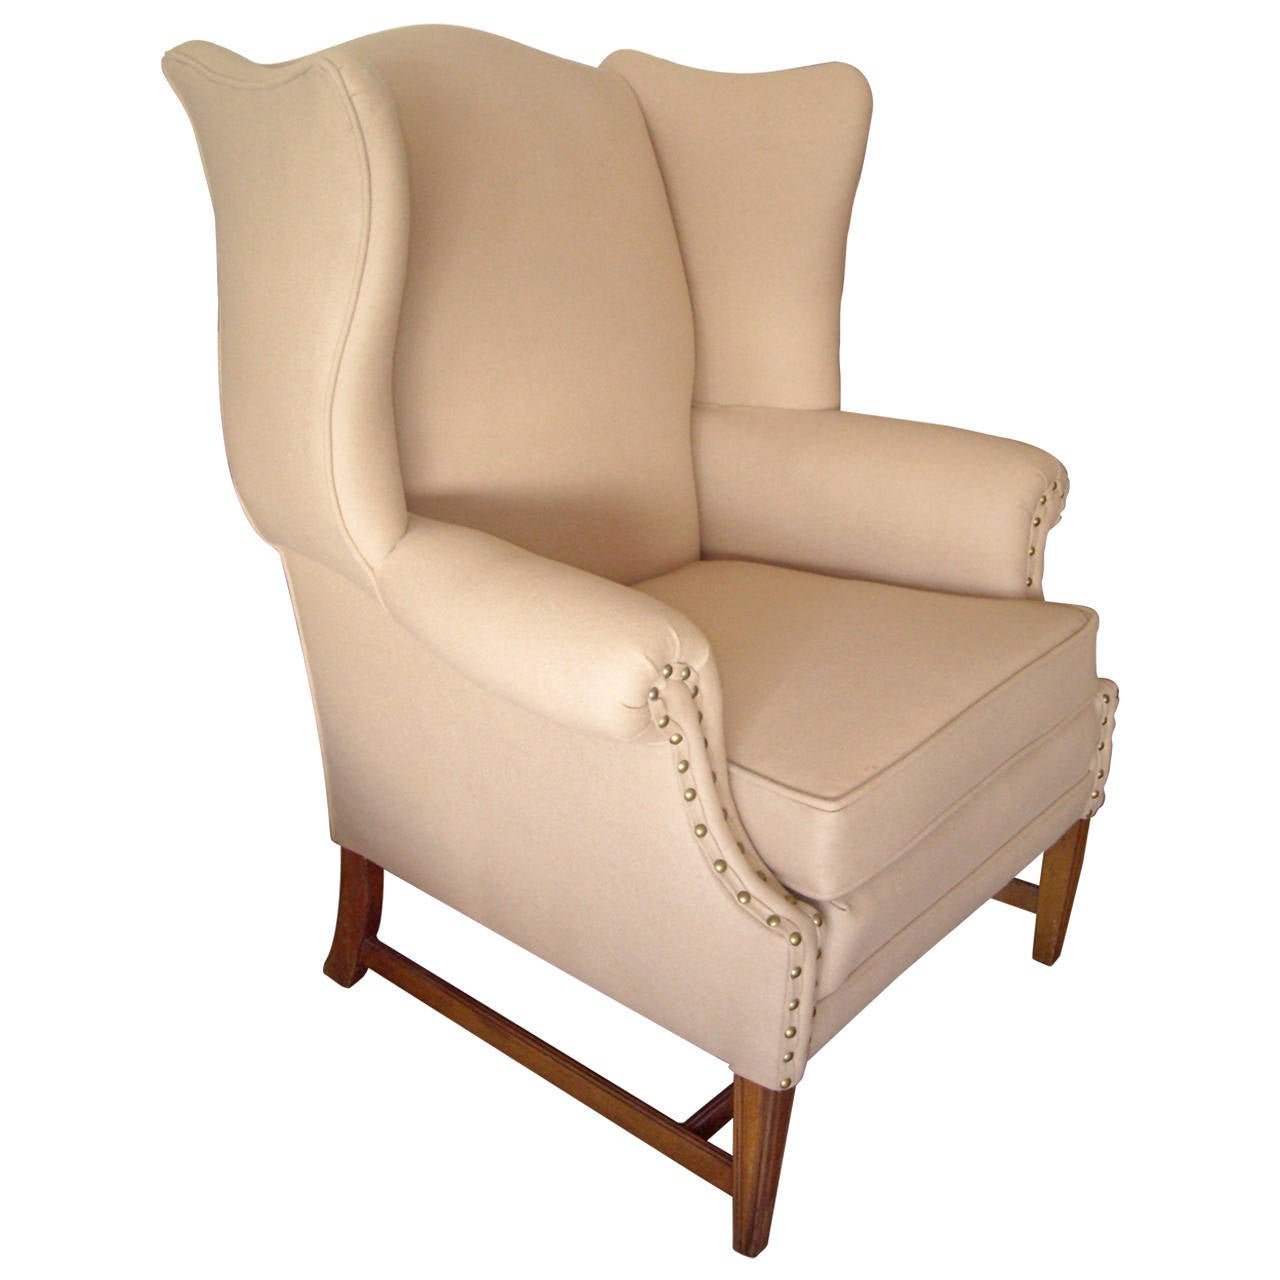 Early Wingback Chair with Studded Brass Arm Holders Front